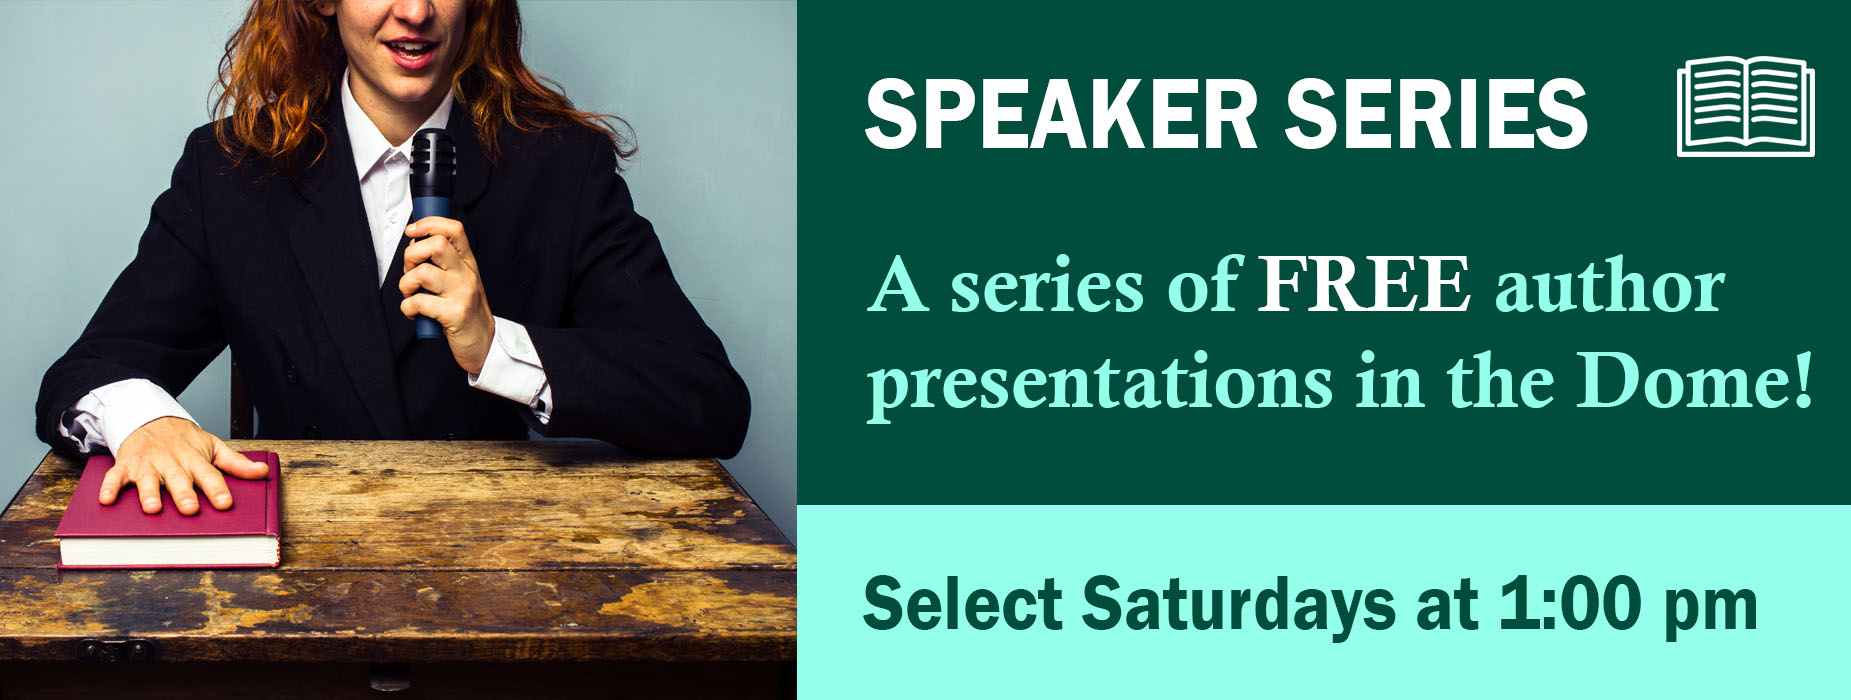 Banner Image for the Author Speaker Series event